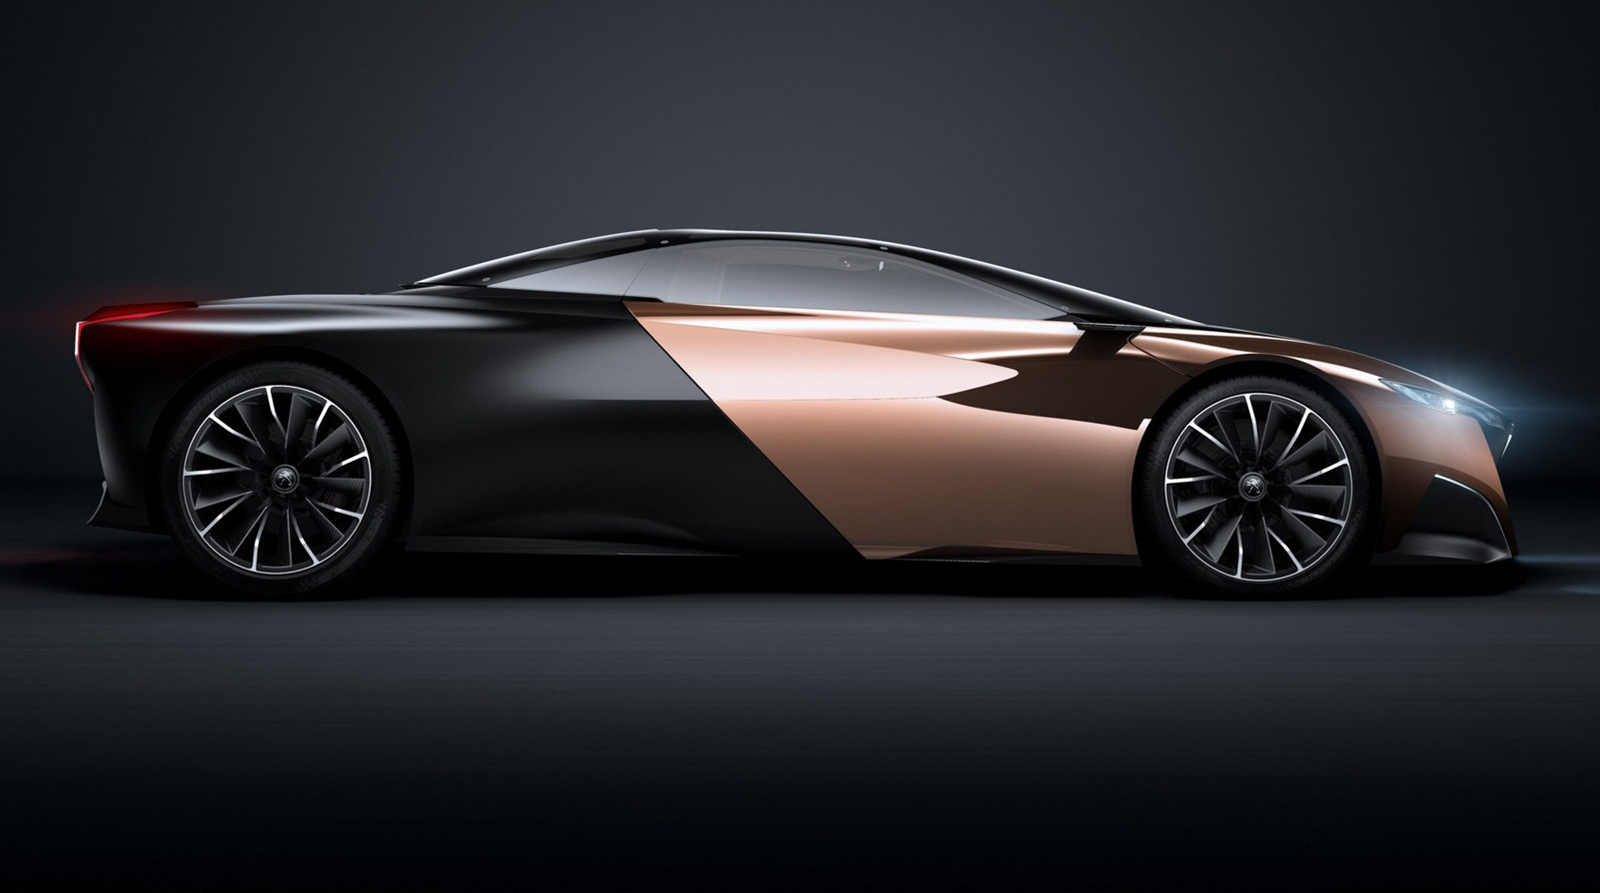 The Peugeot Onyx concept